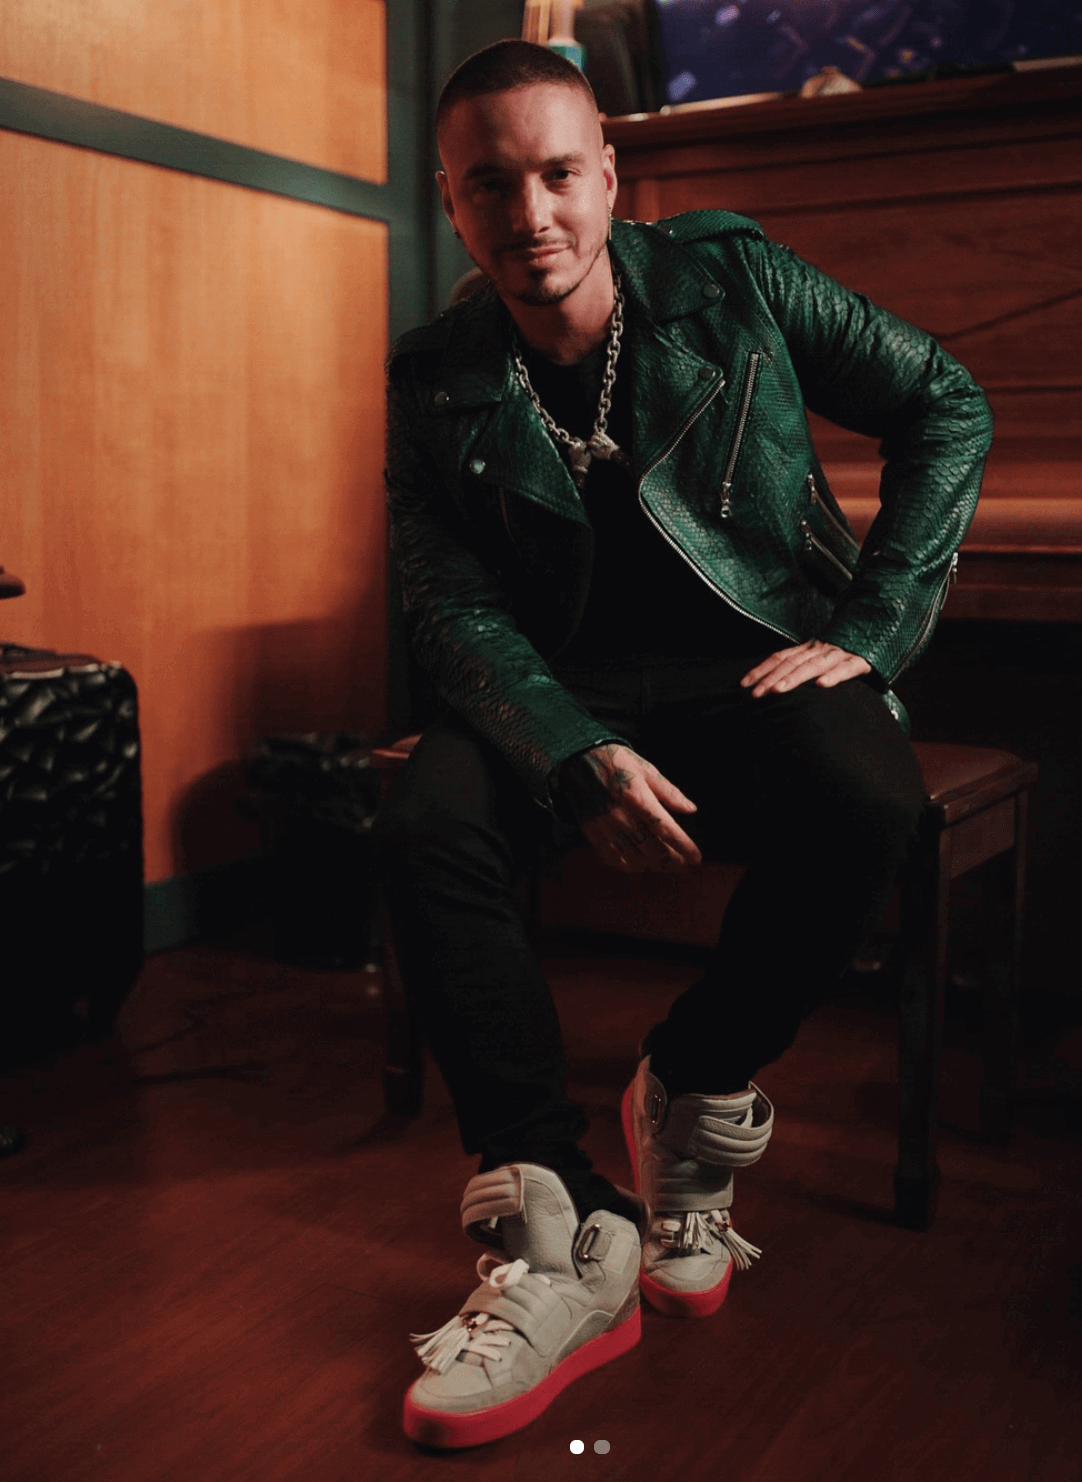 J Balvin in the Kanye West x Louis Vuitton Jasper